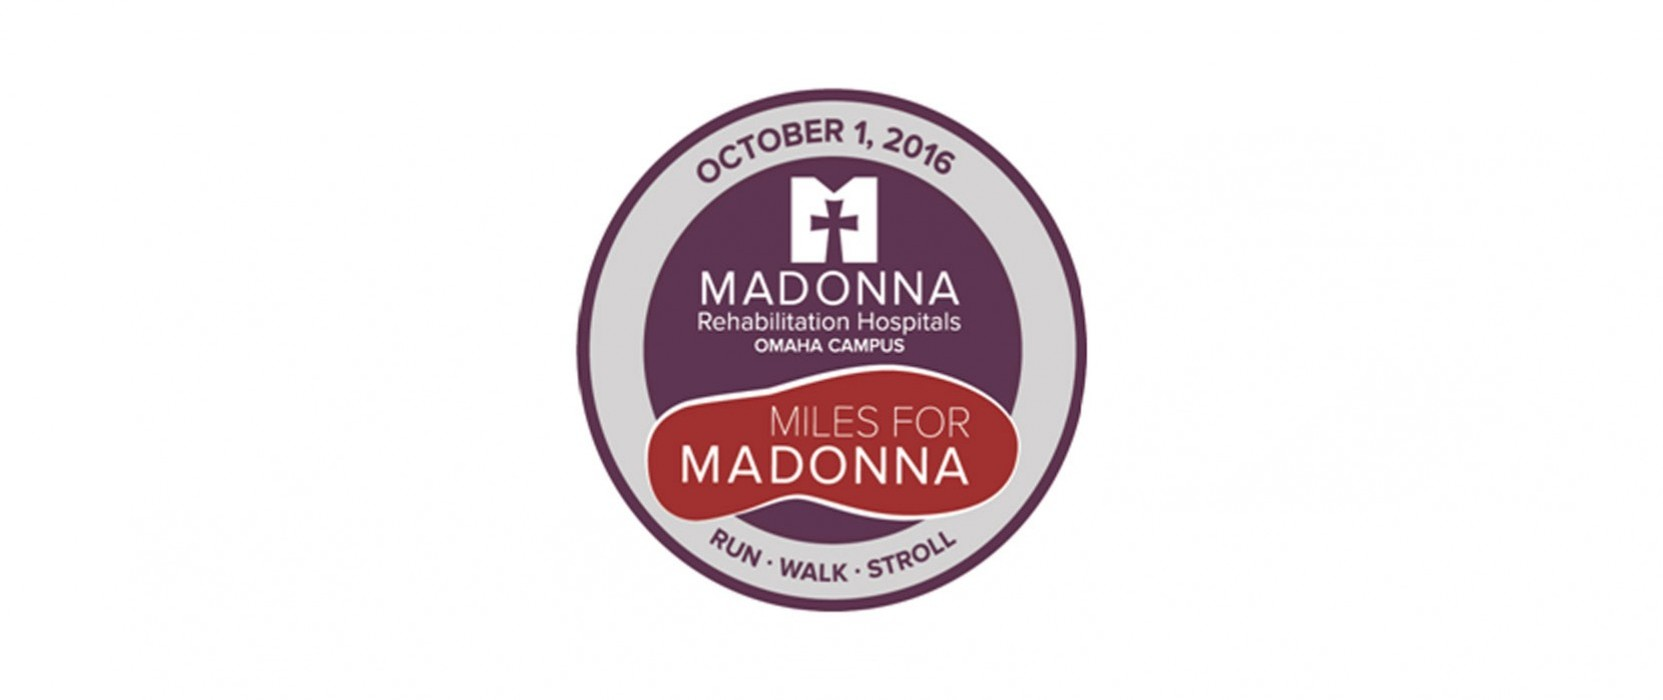 Inaugural fun run/walk supports Madonna